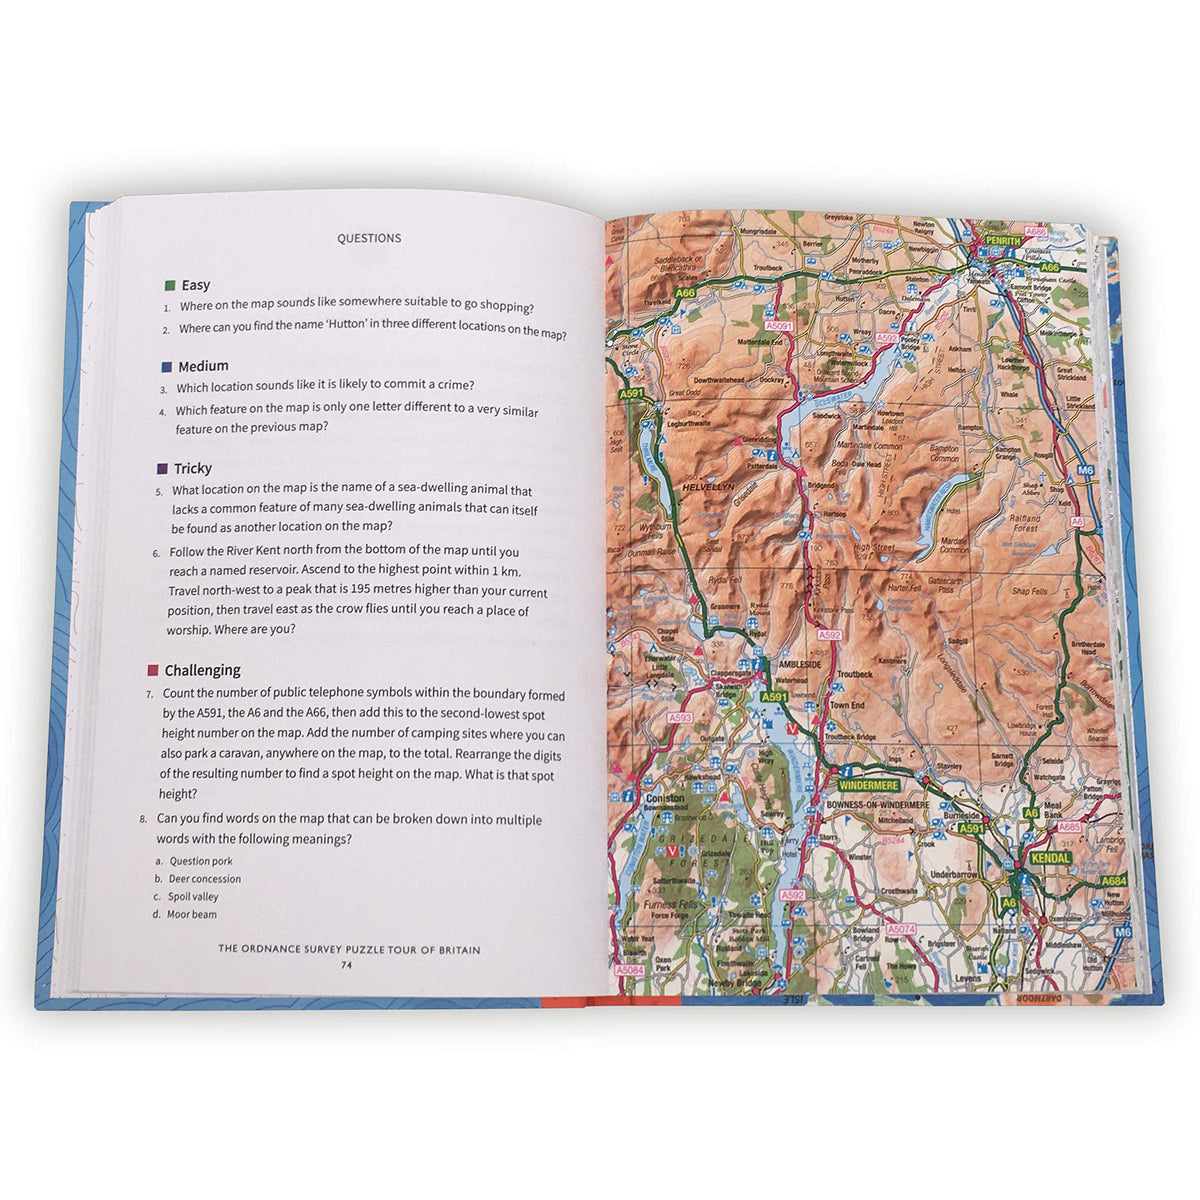 Inside spread of The Ordnance Survey Puzzle Tour of Britain